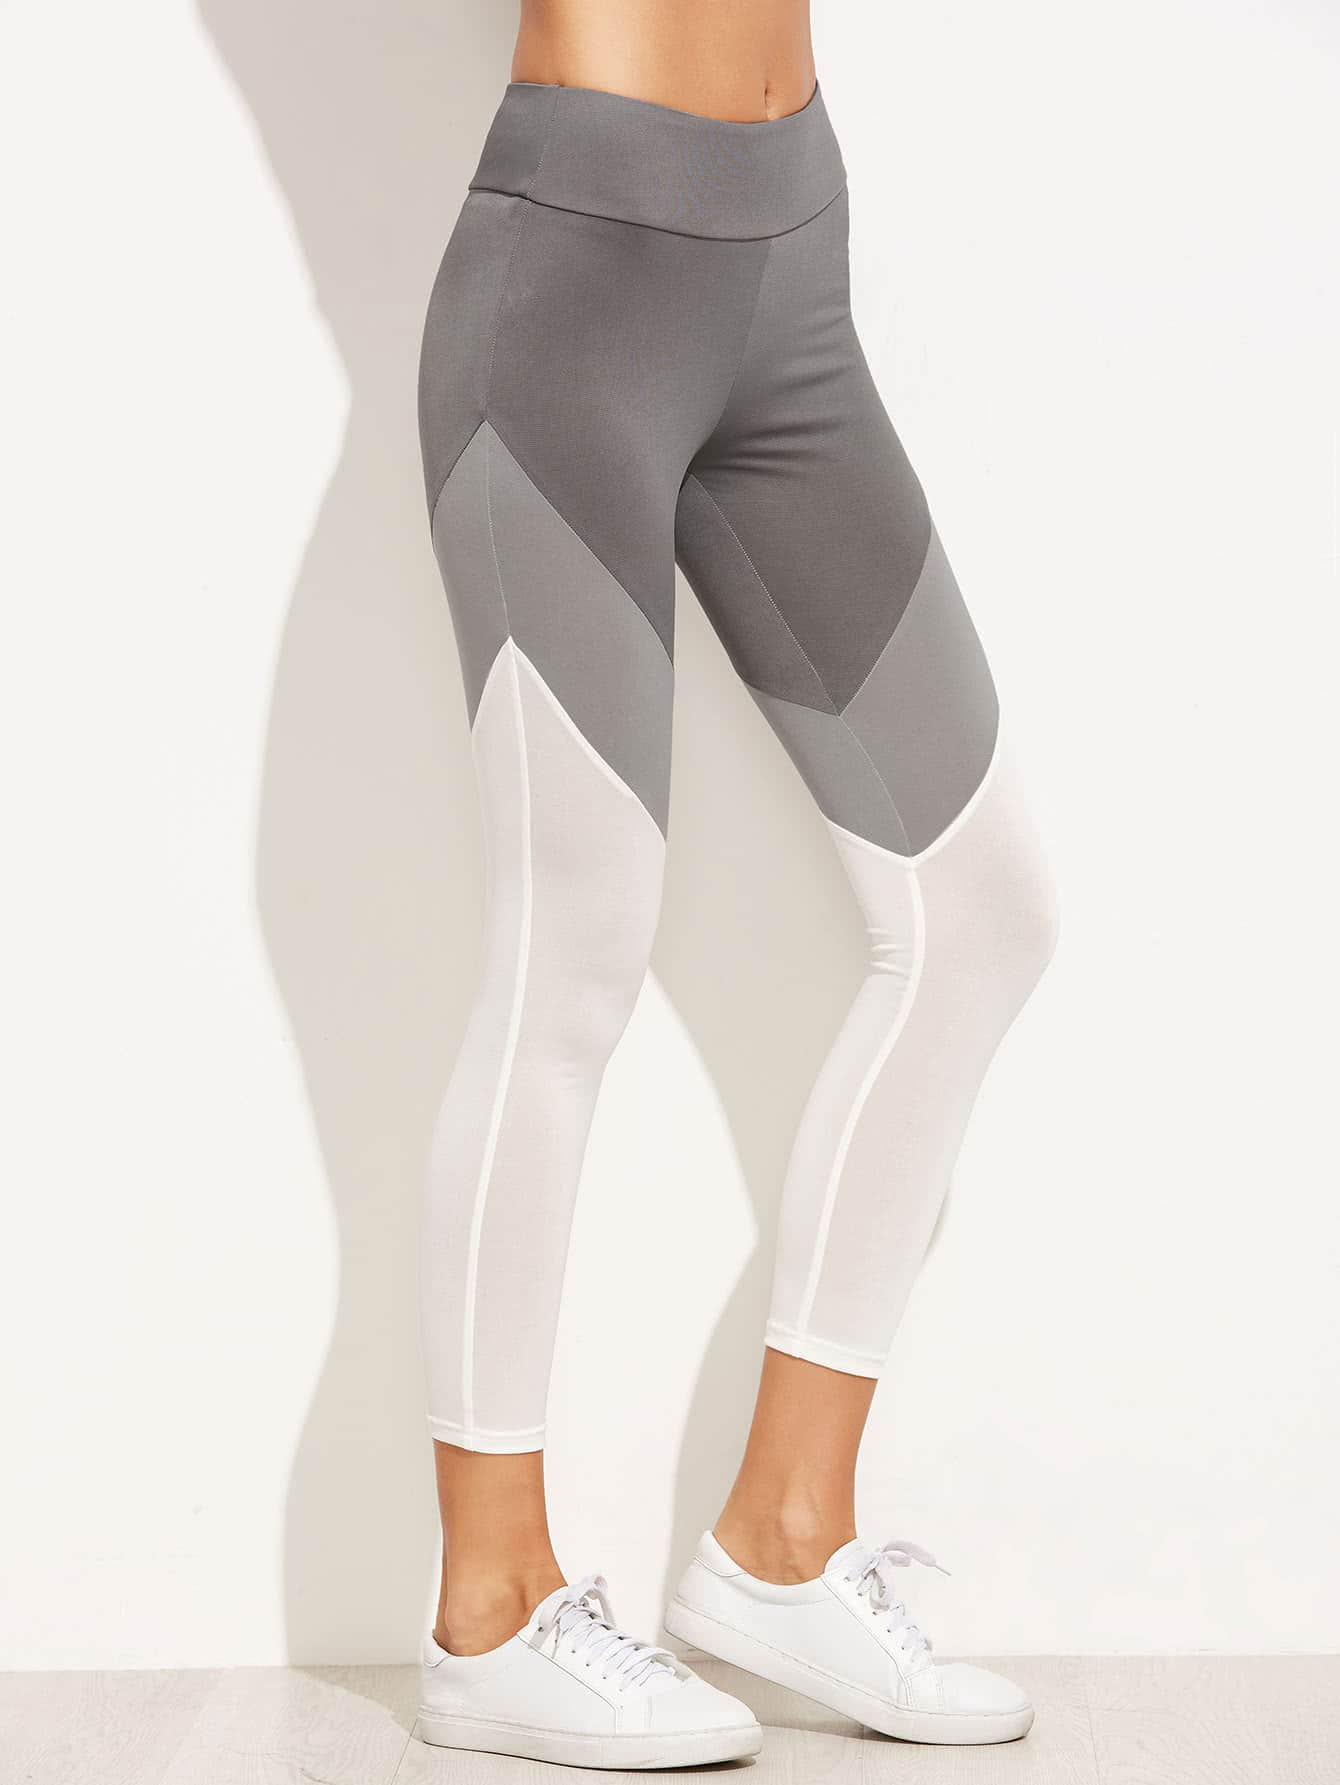 leggings160829702_2